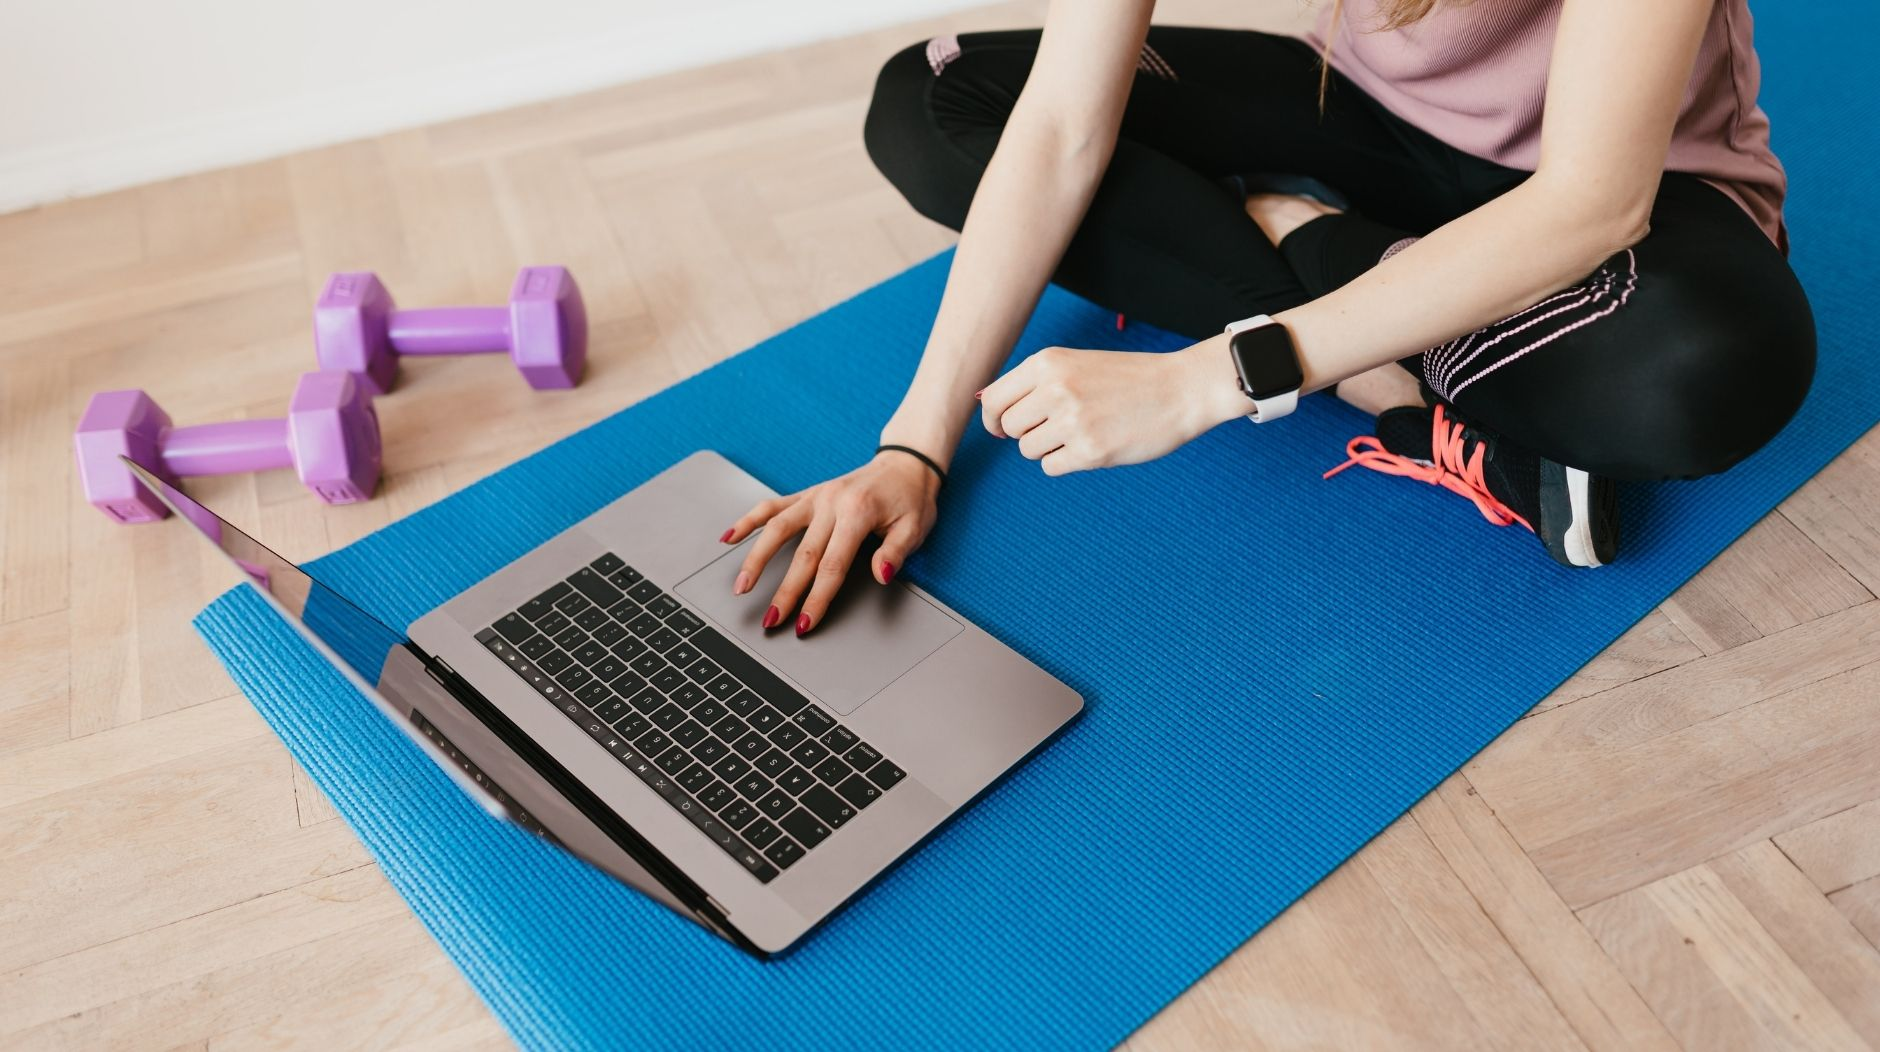 Fitness to reduce stress & depression